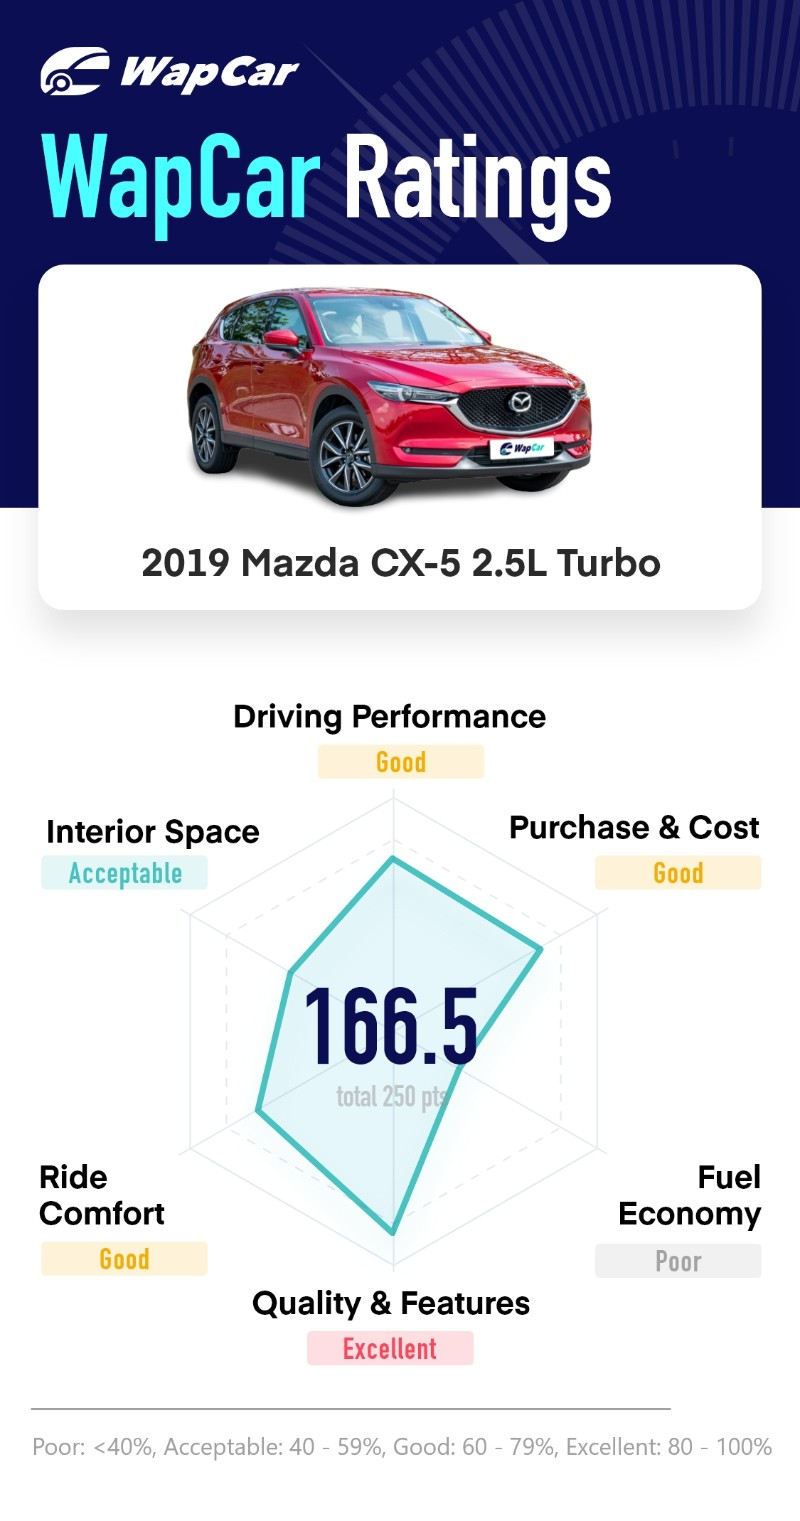 2020 Mazda CX-5 Turbo Ratings